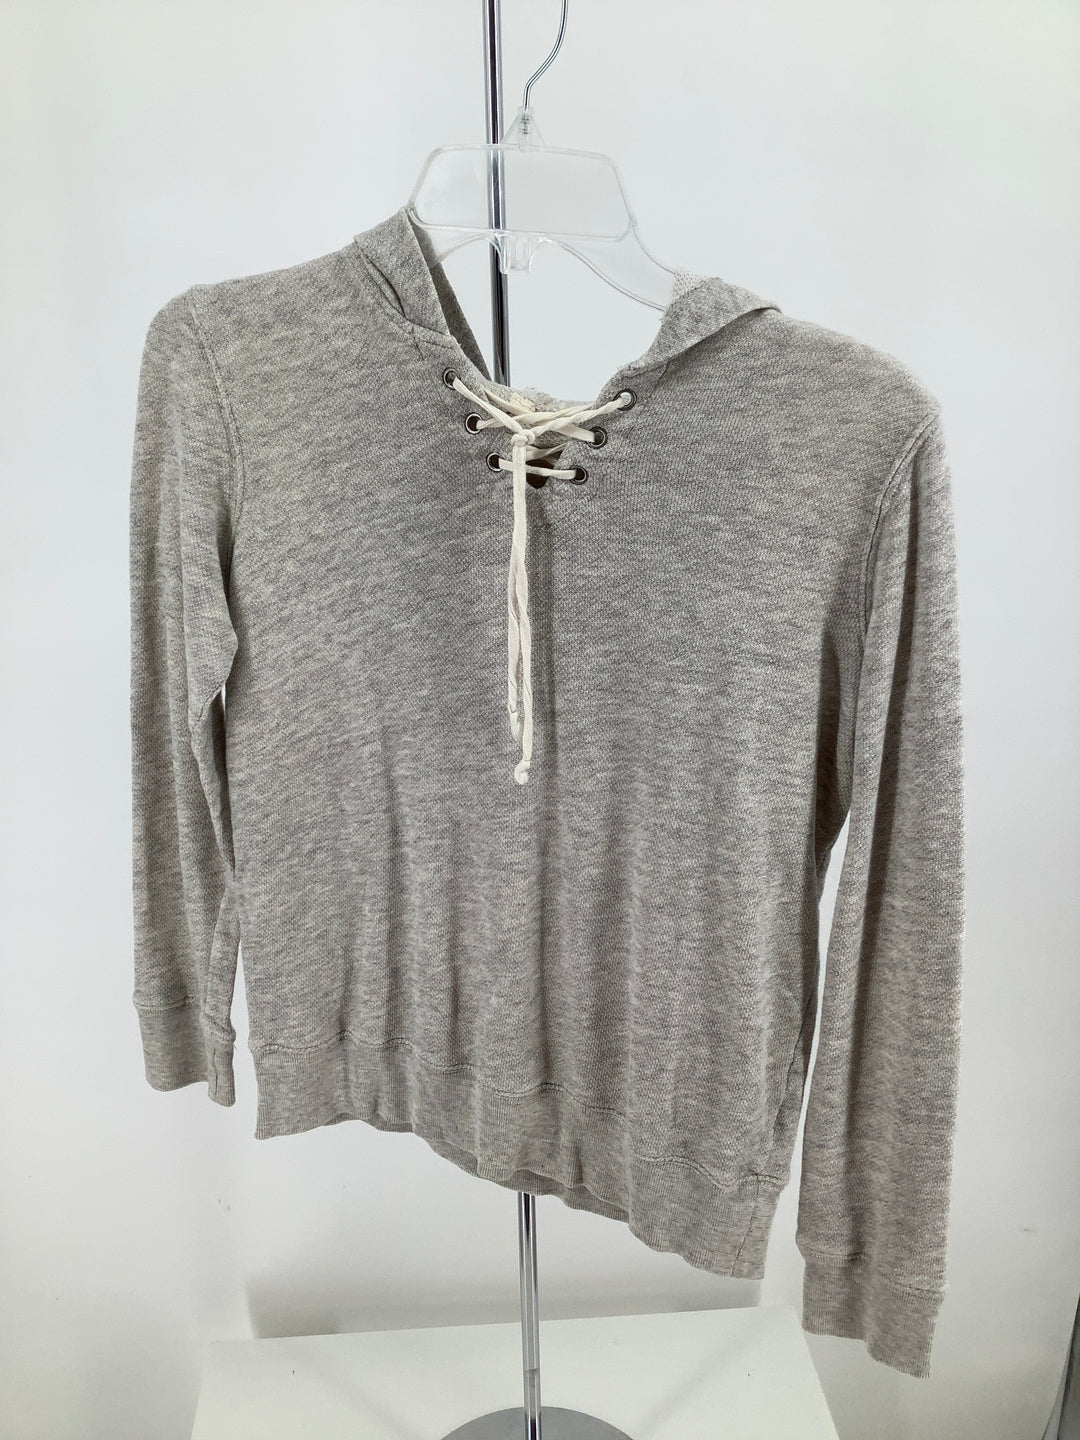 Primary Photo - brand: j crew o , style: top long sleeve , color: grey , size: xs , sku: 105-2768-25873